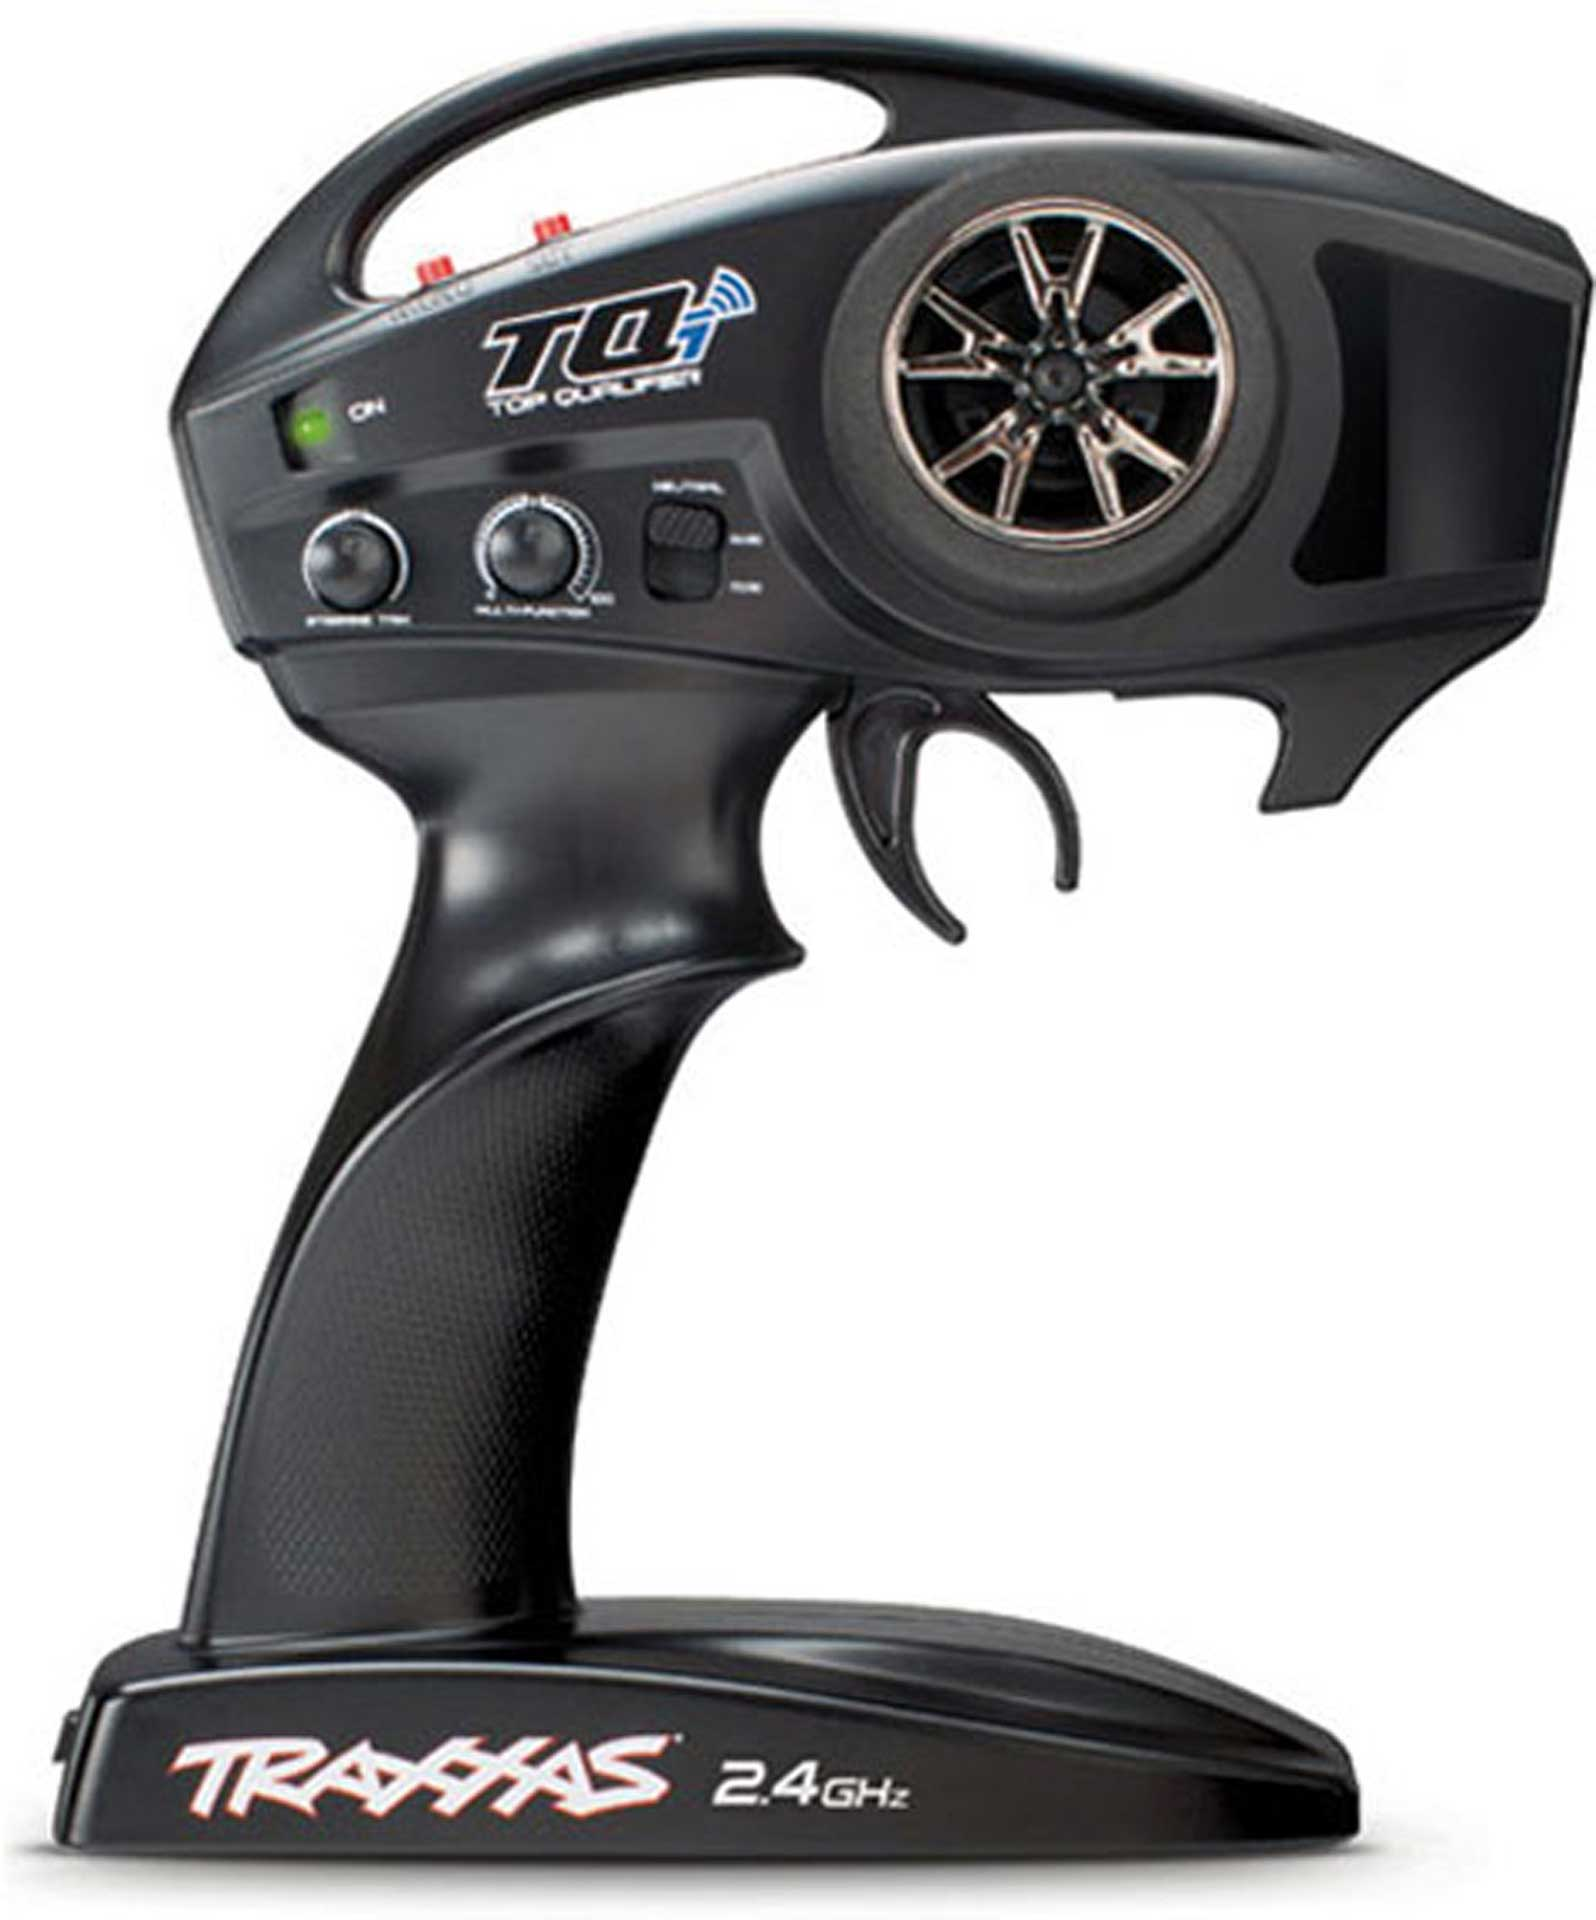 TRAXXAS TQI TRANSMITTER 2 CHANNEL 2,4GHZ LINK ENABLED TRANSMITTER